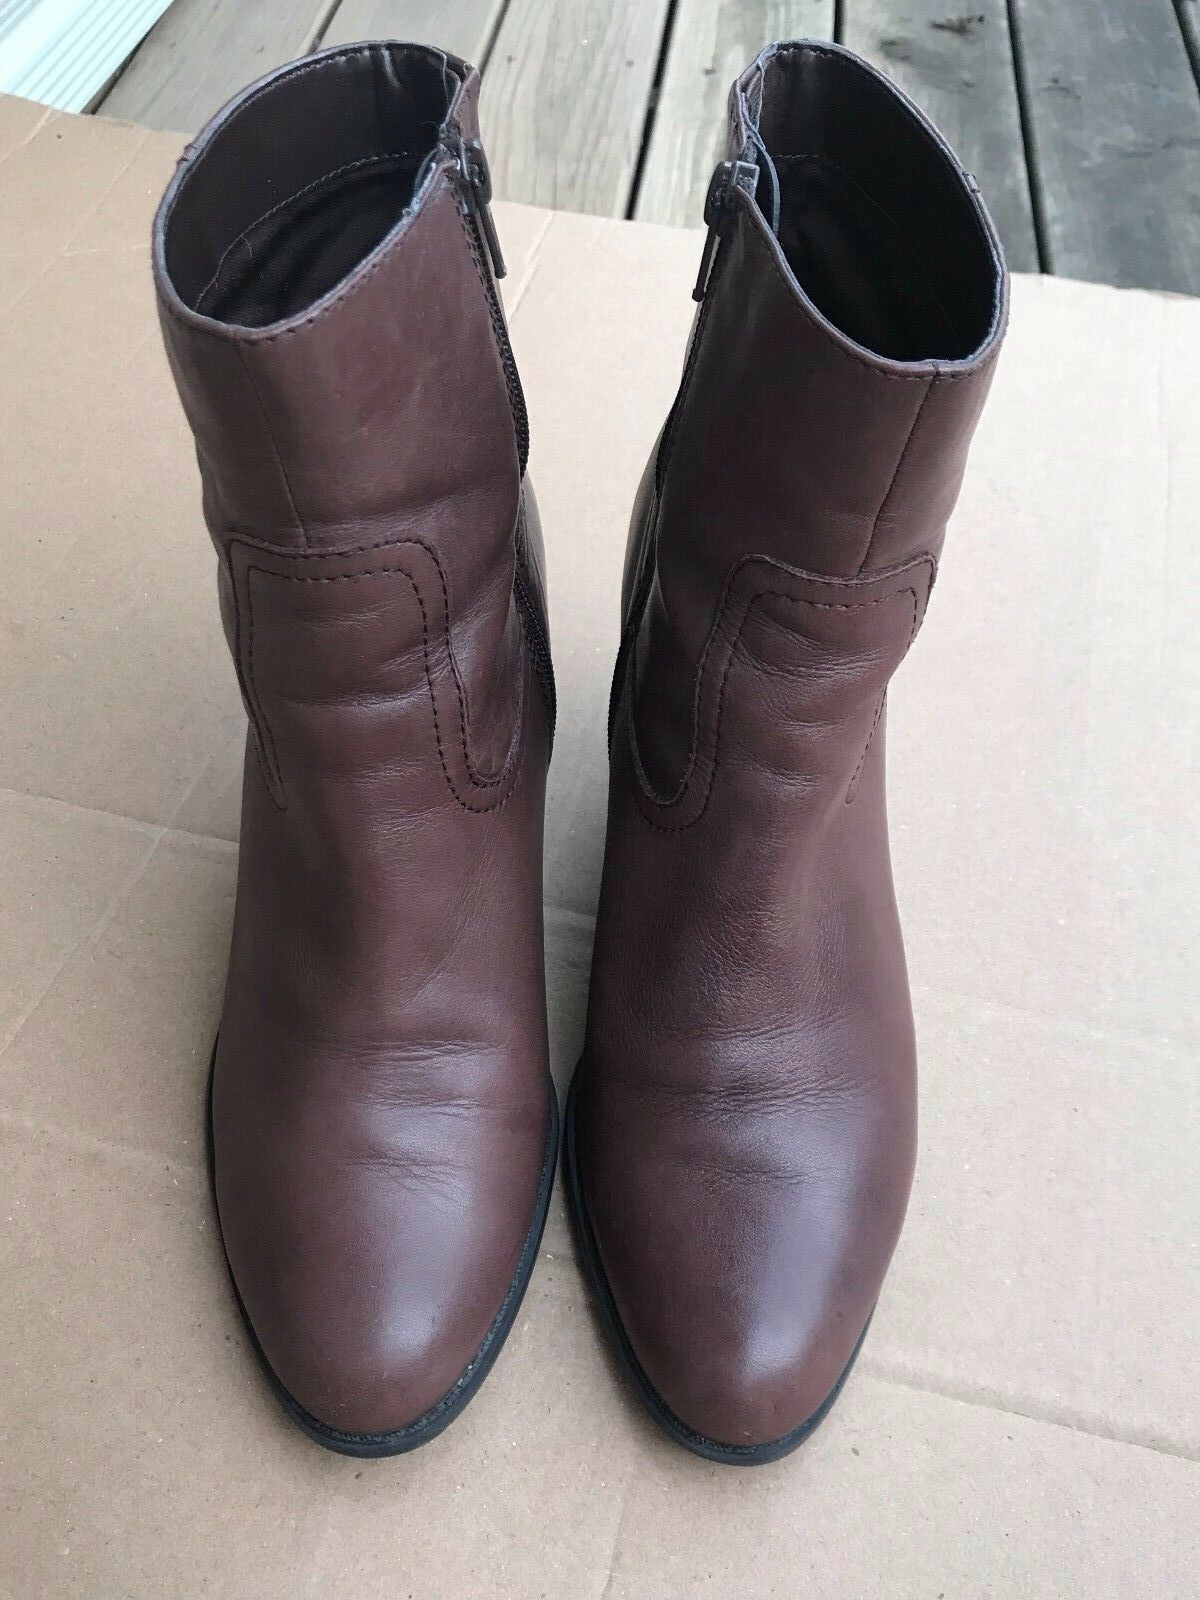 A.N.A. A NEW APPROACH Womens Brown Leather Side Zip Ankle Boots 8.5 M